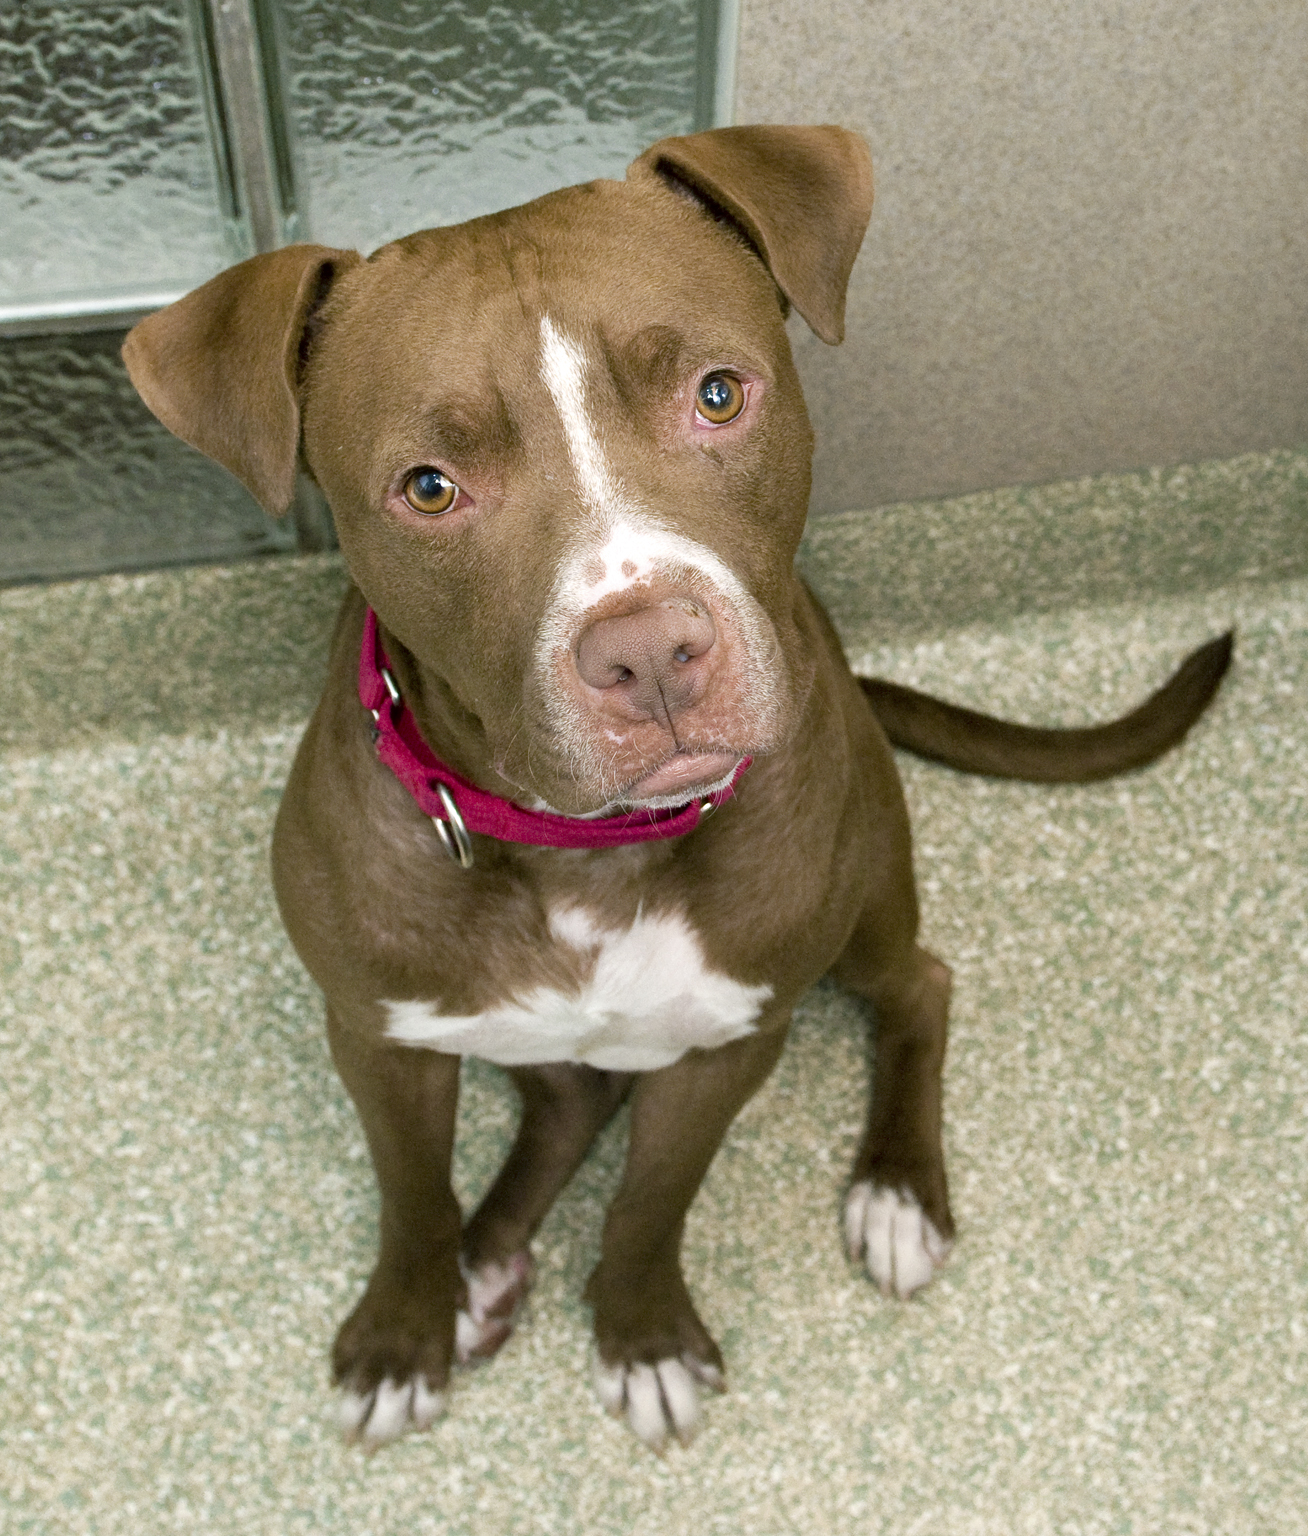 Pet of the Week: Confetti